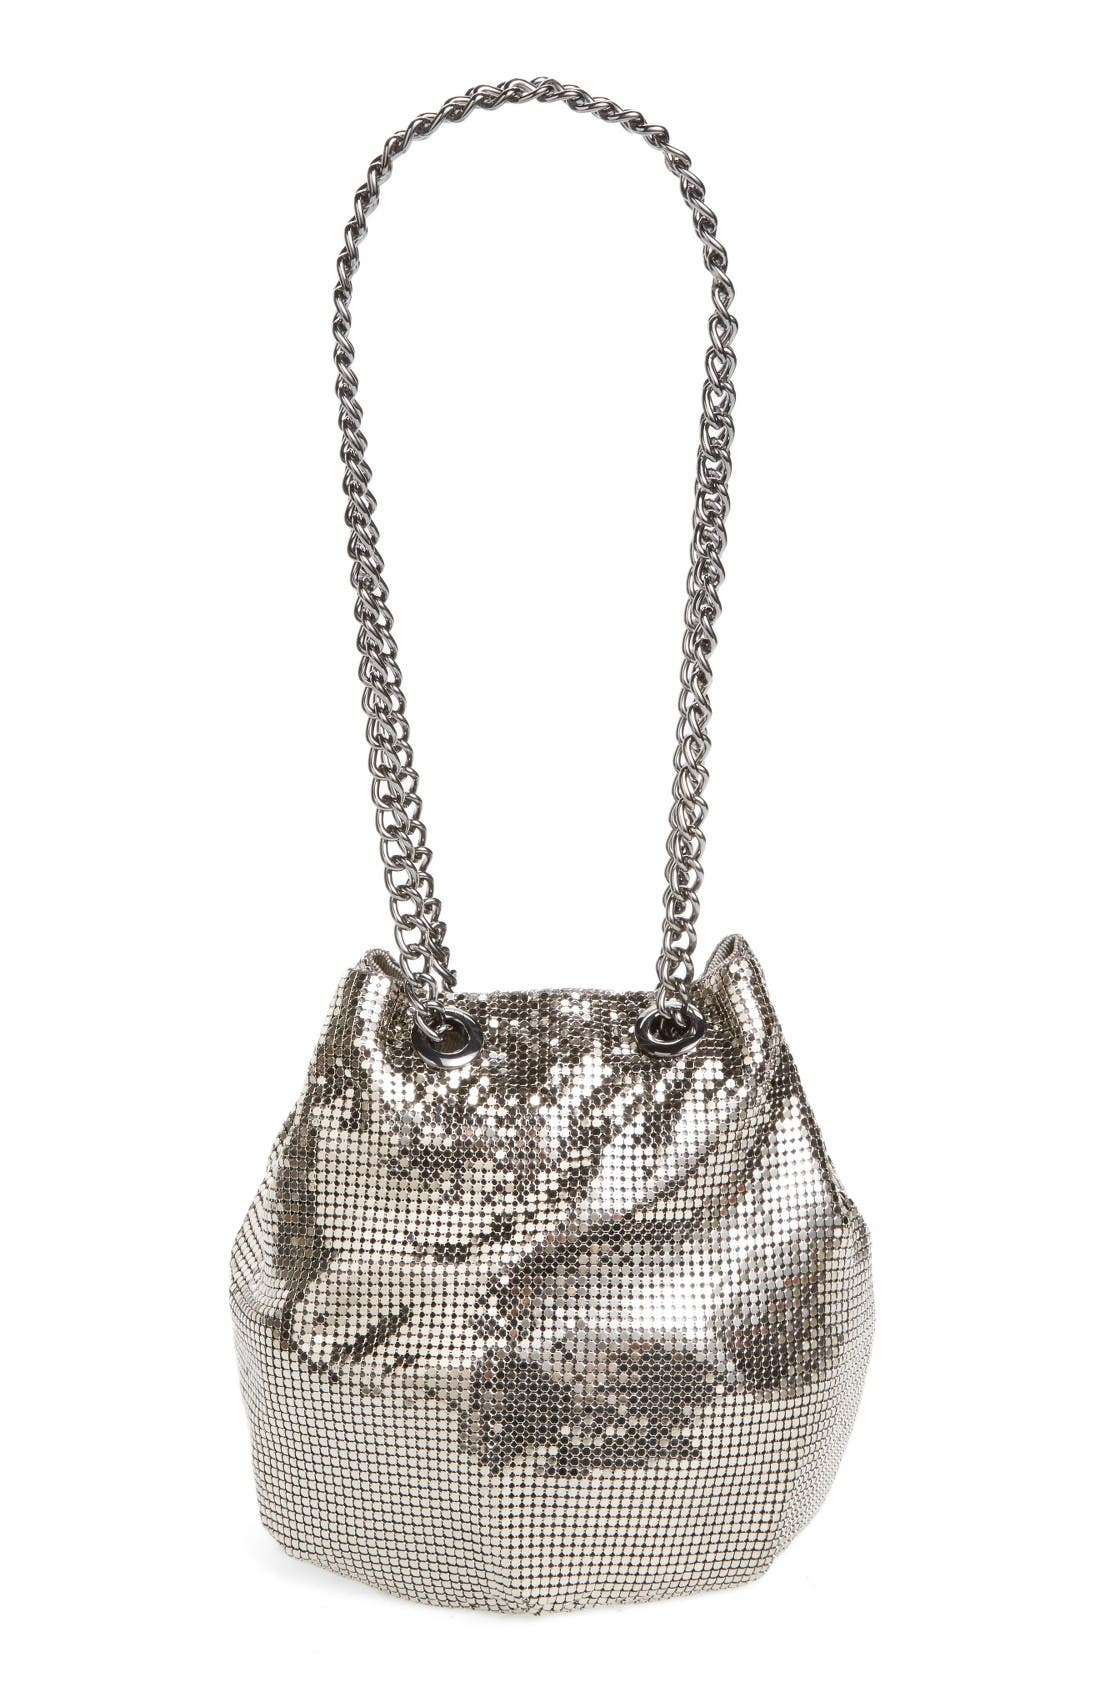 Alternate Image 1 Selected - Whiting & Davis Mesh Bucket Bag